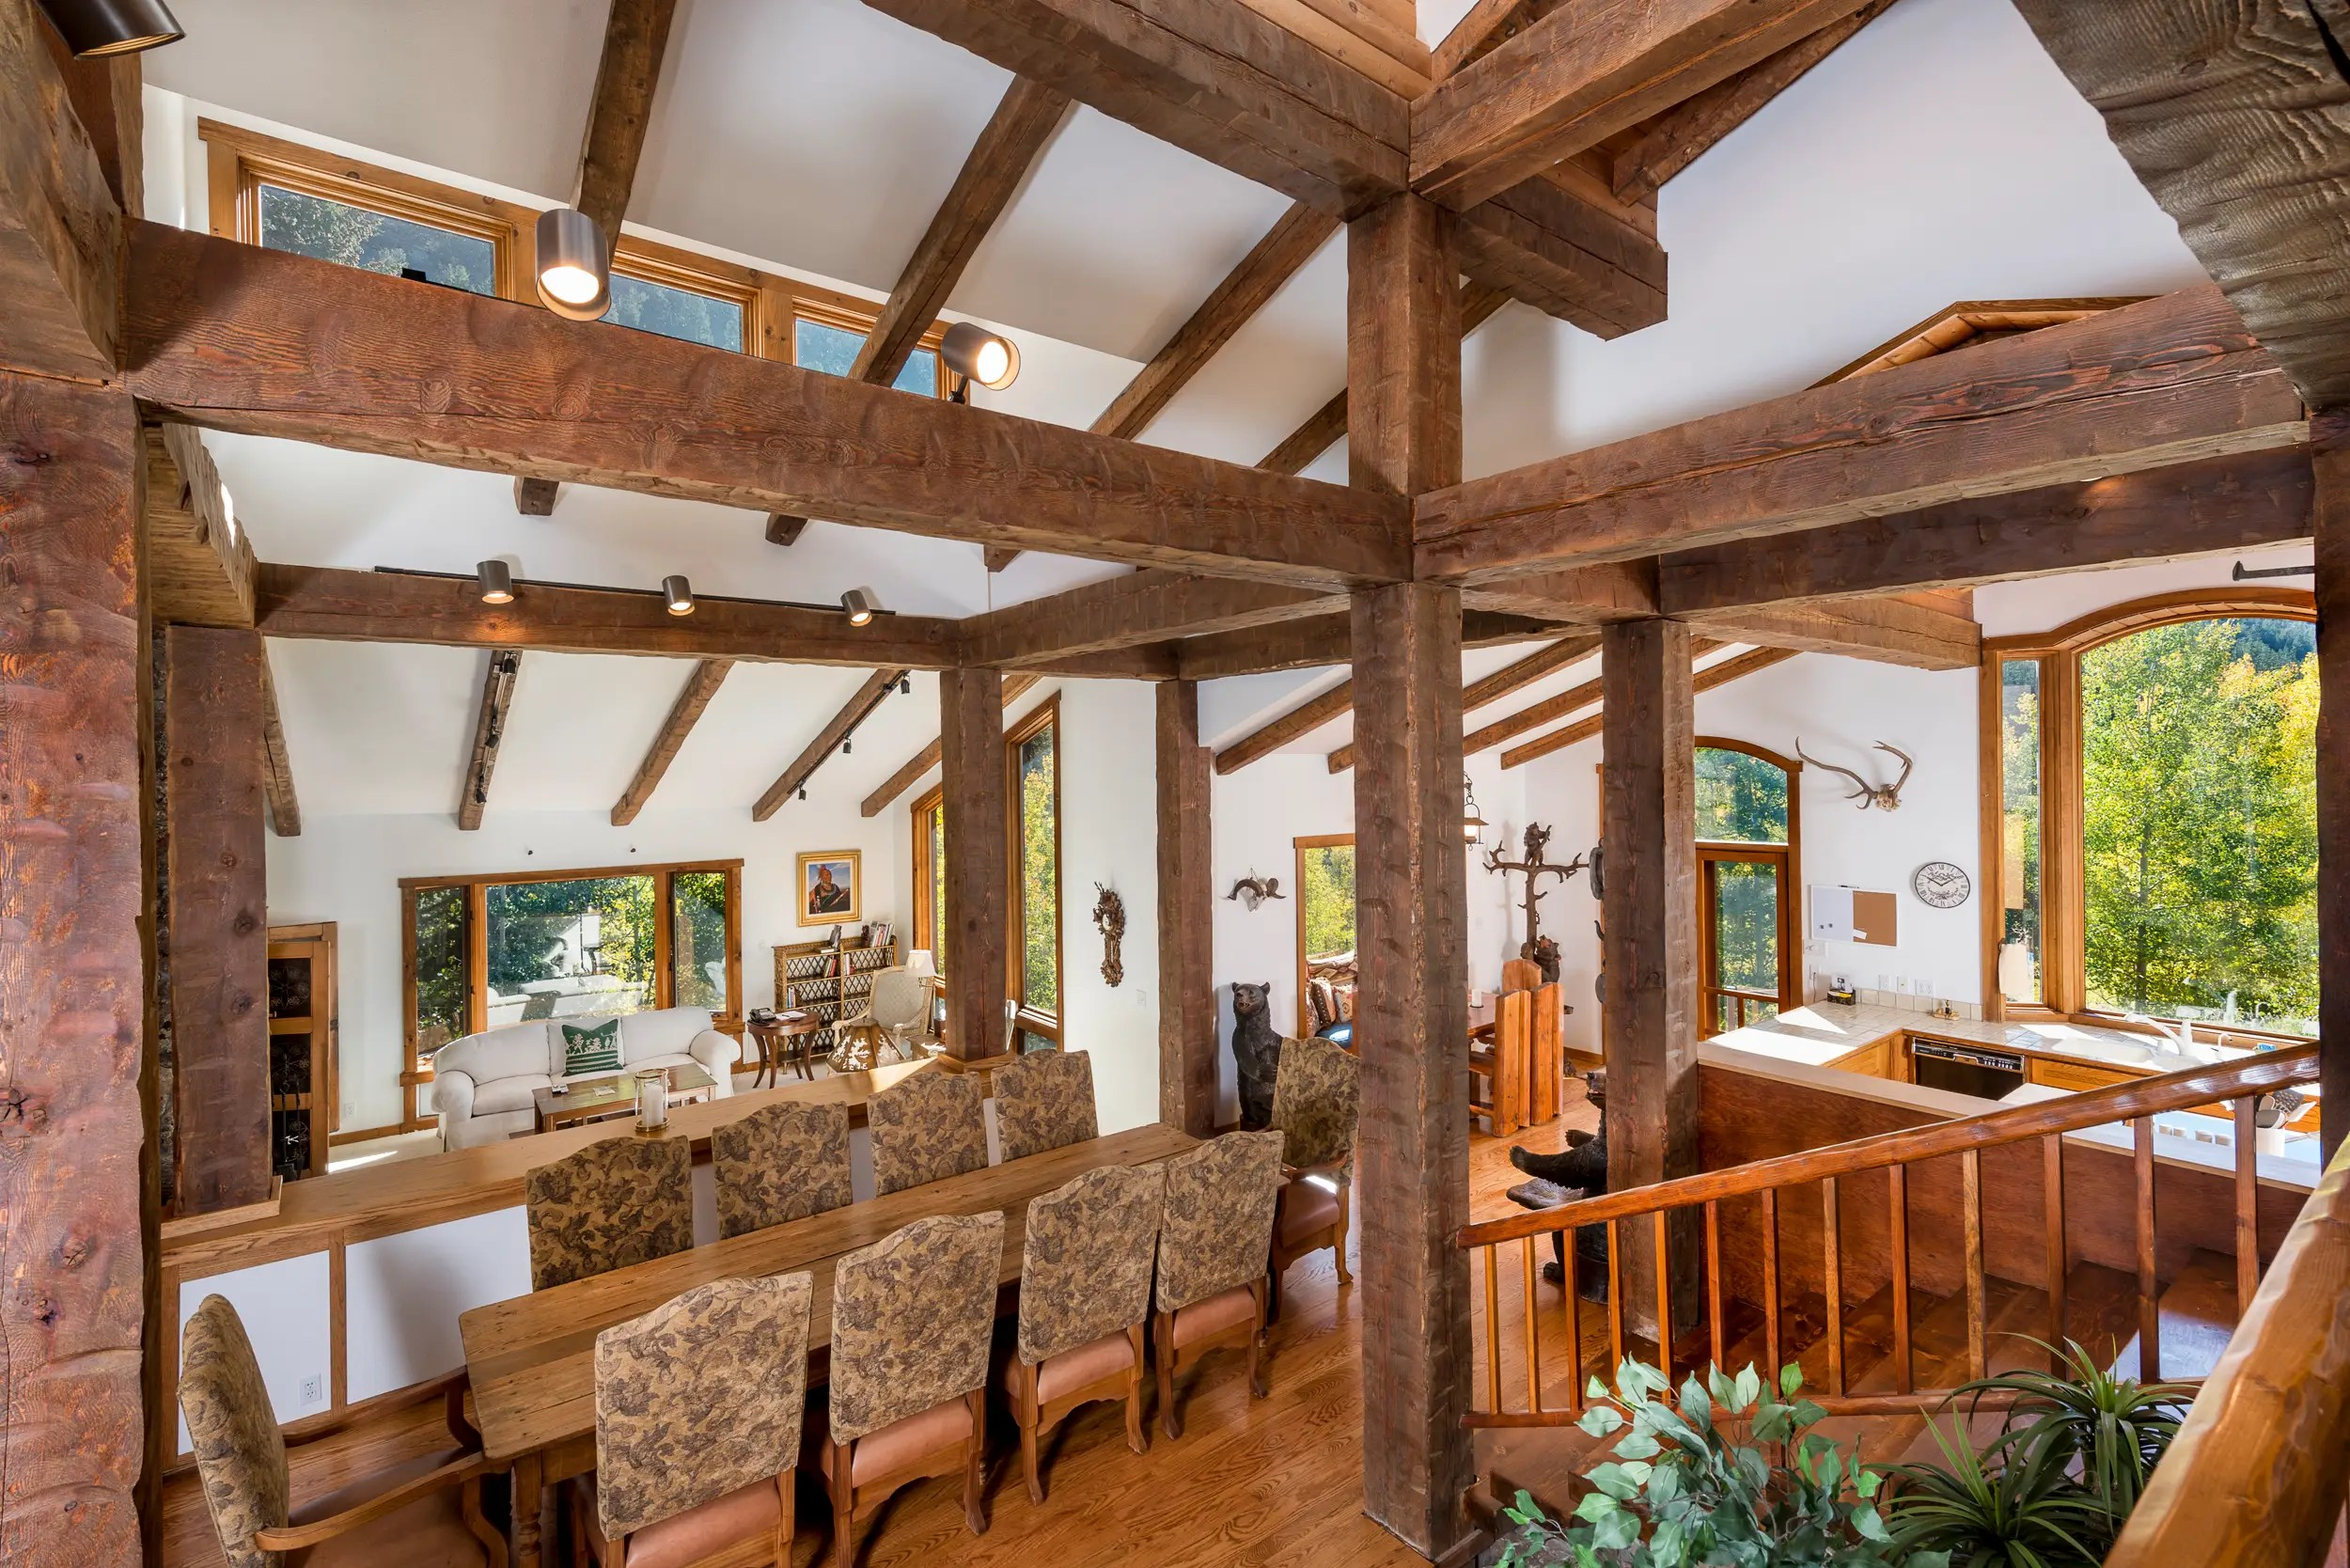 Exposed beams give it a rustic vibe.